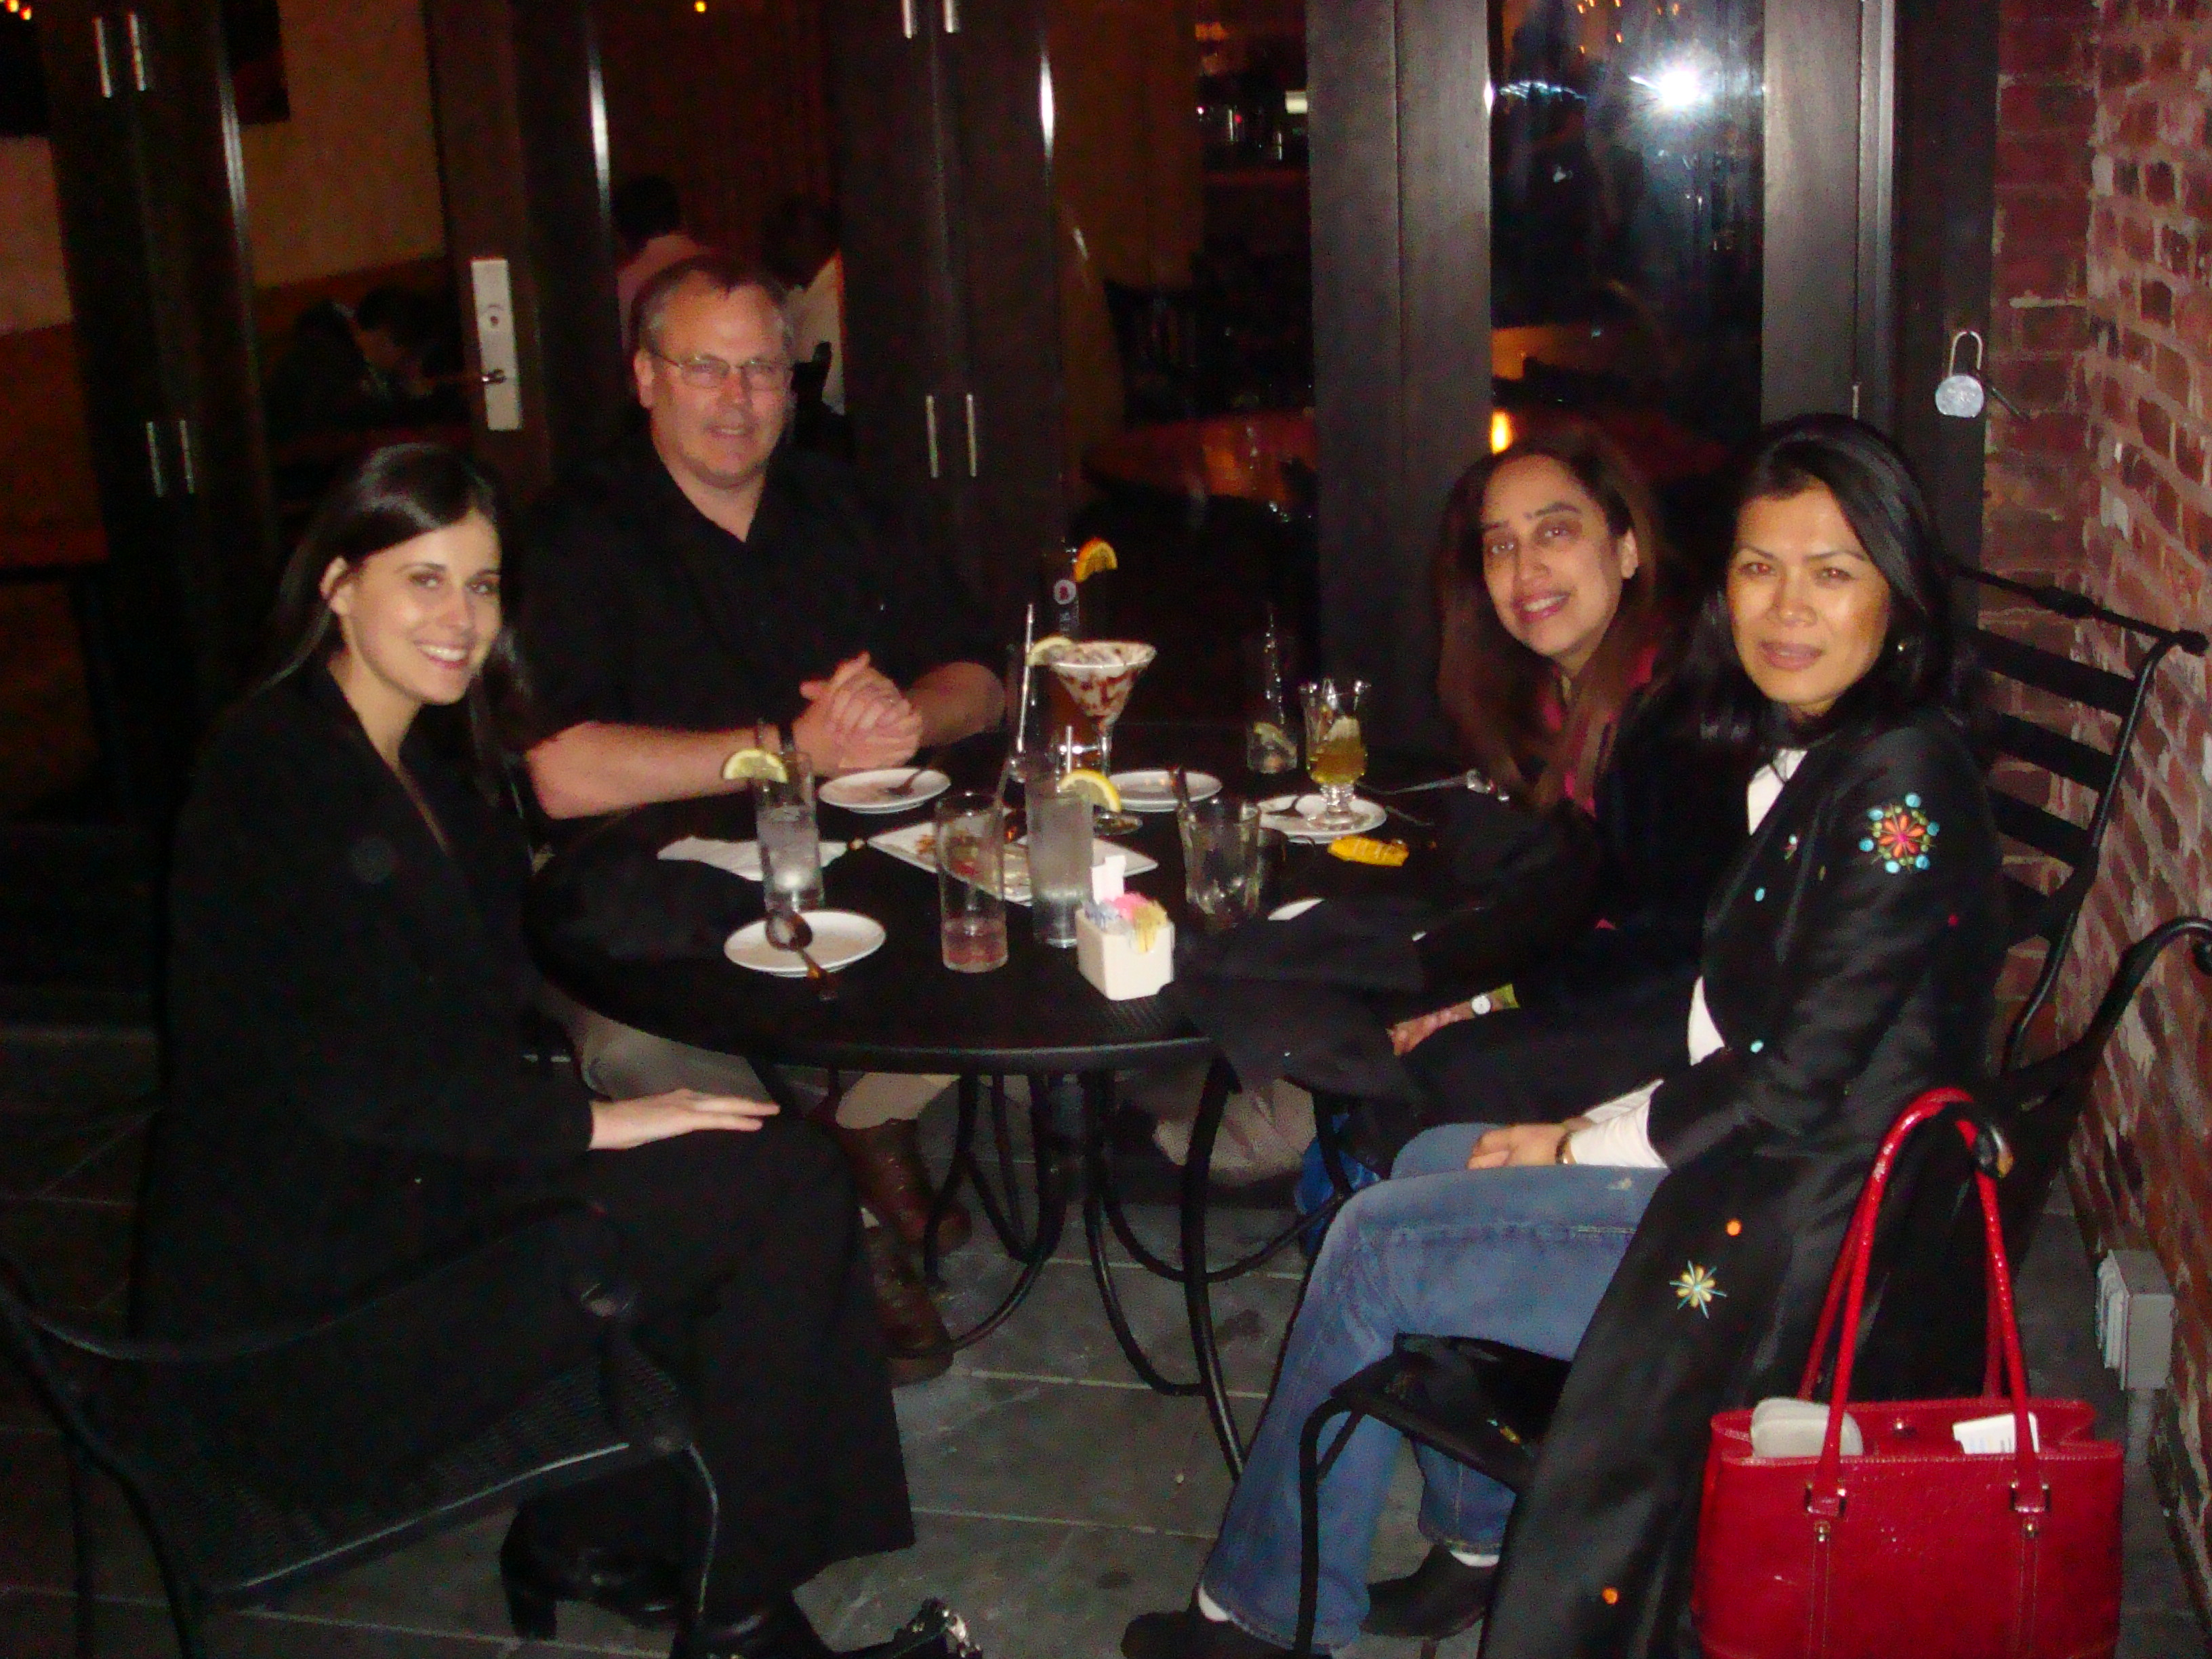 Theary Seng, Alex Hinton, Neja Navarro, Elena Lesley at dinner (Newark, 1 April 2010)